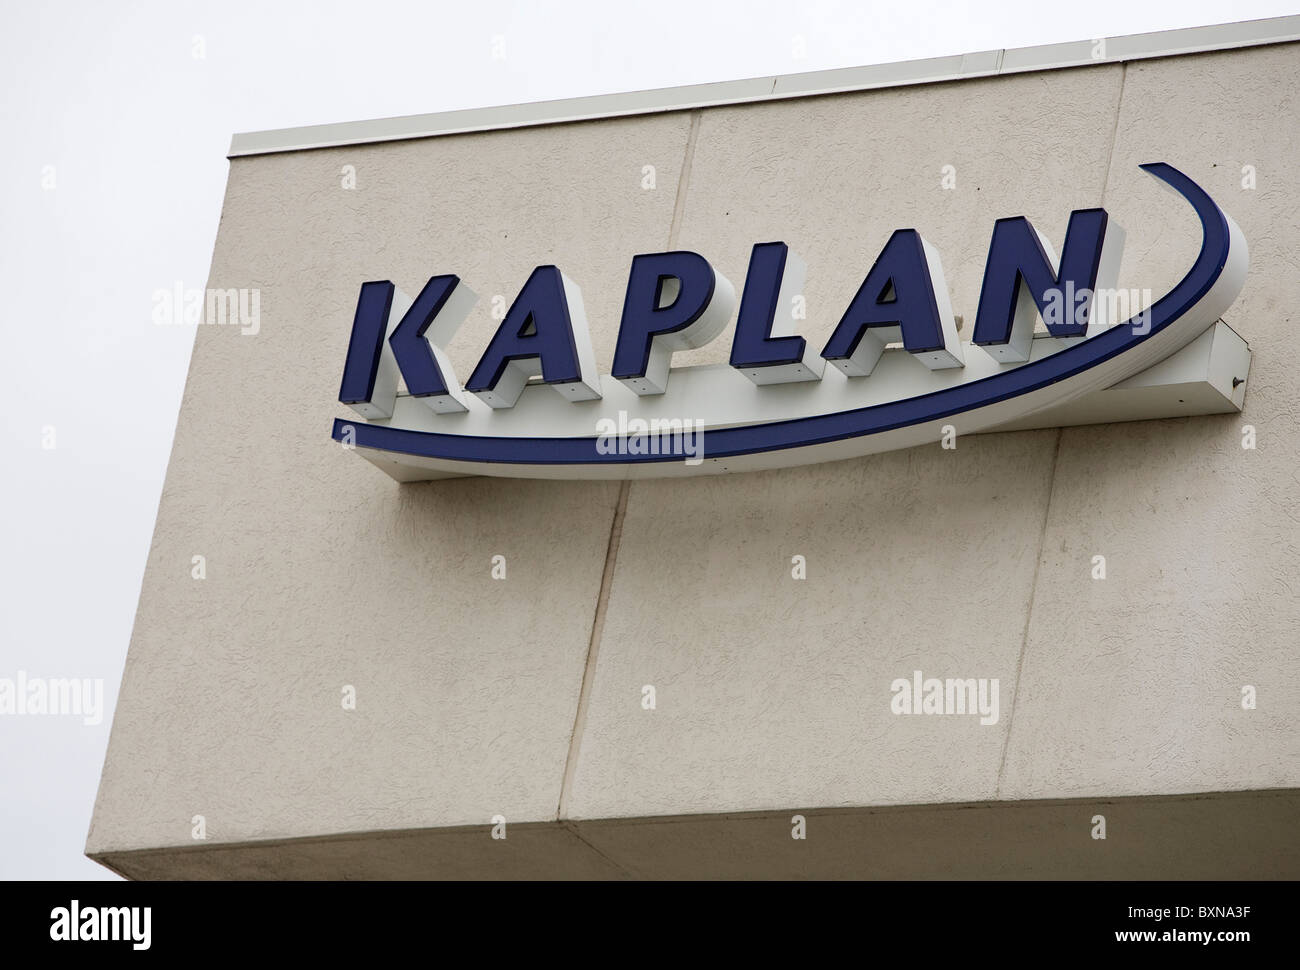 A Kaplan for-profit college.  - Stock Image